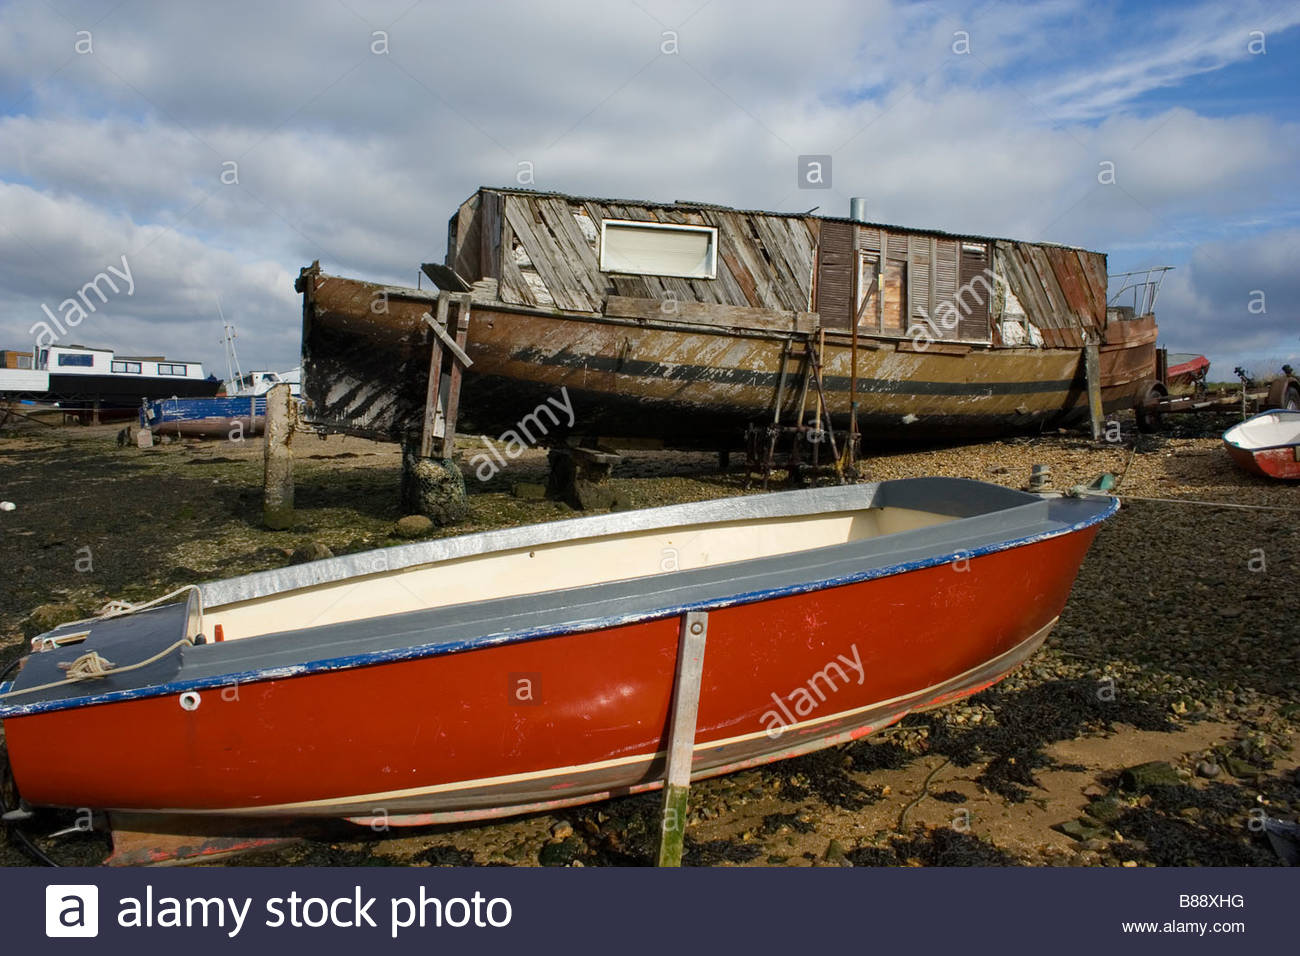 Old House Boat Eastney Portsmouth England - Stock Image